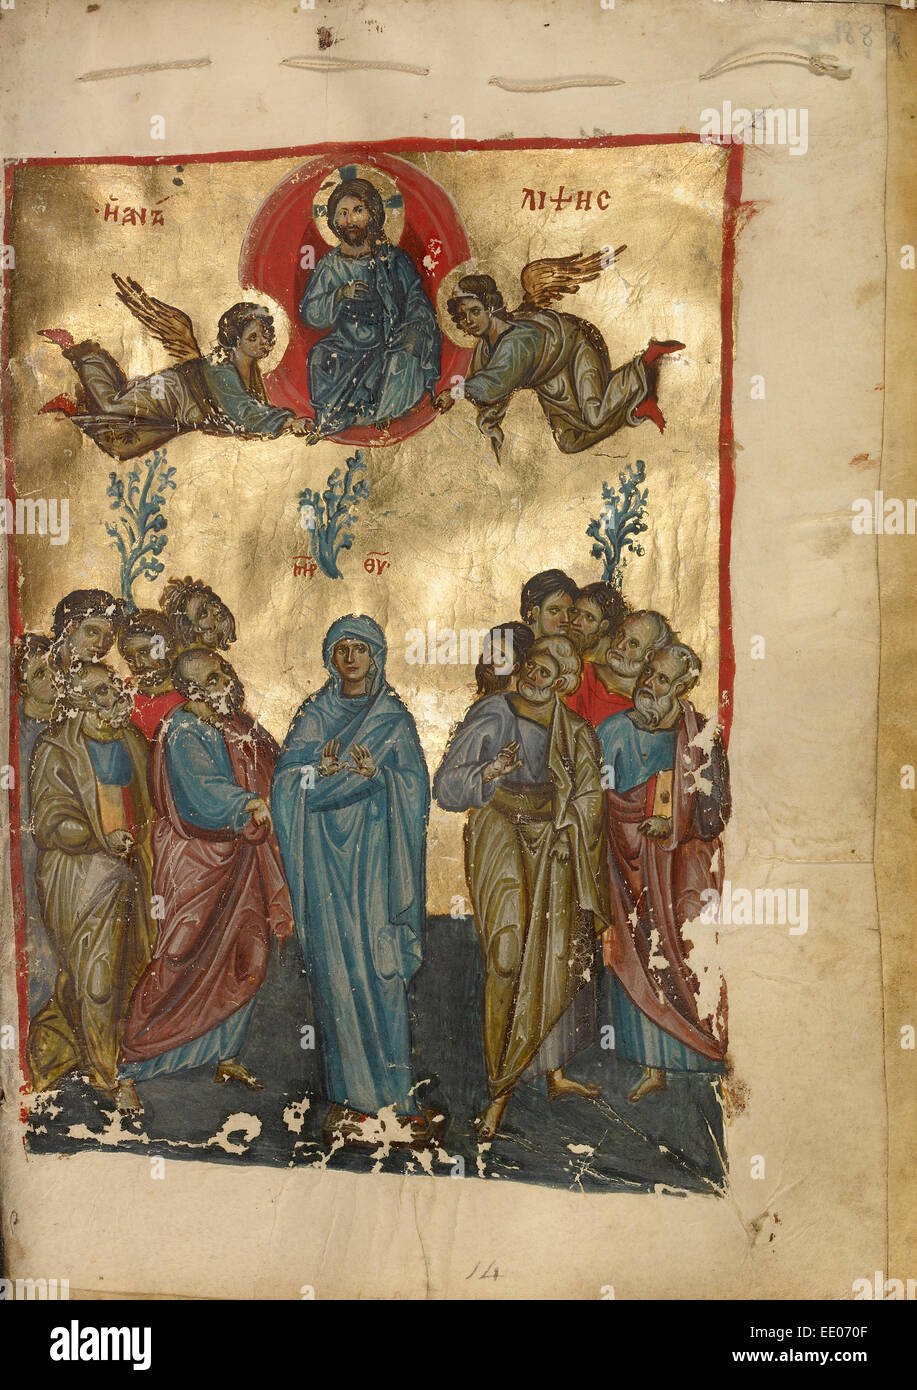 The Ascension; Unknown; Byzantine Empire; early 13th century - late 13th century; Tempera colors and gold leaf on - Stock Image